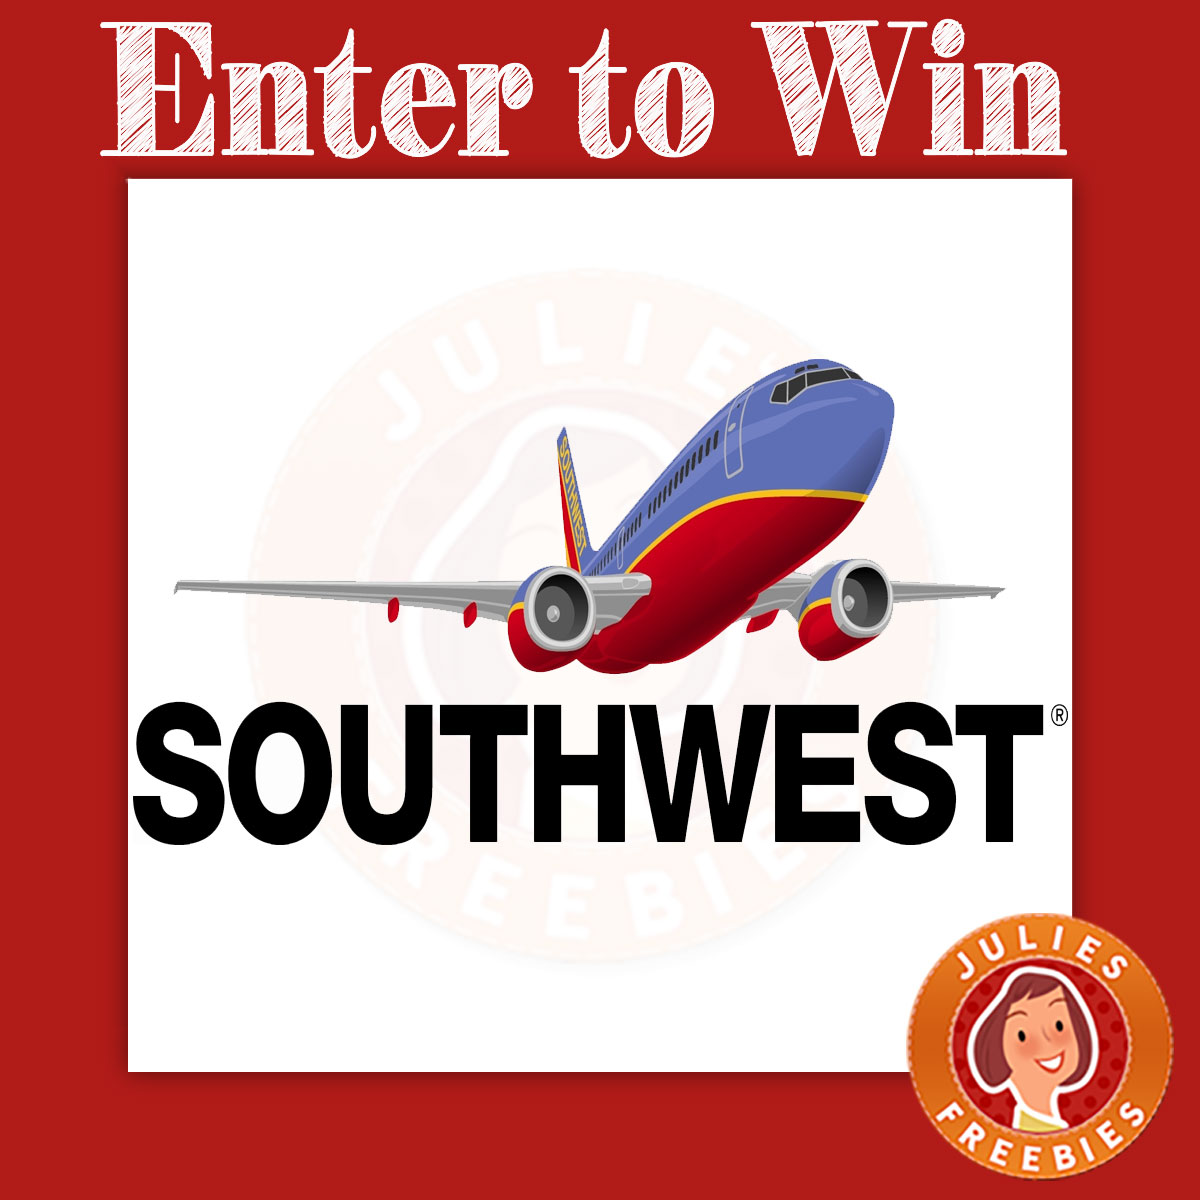 southwest airlines giveaway on facebook